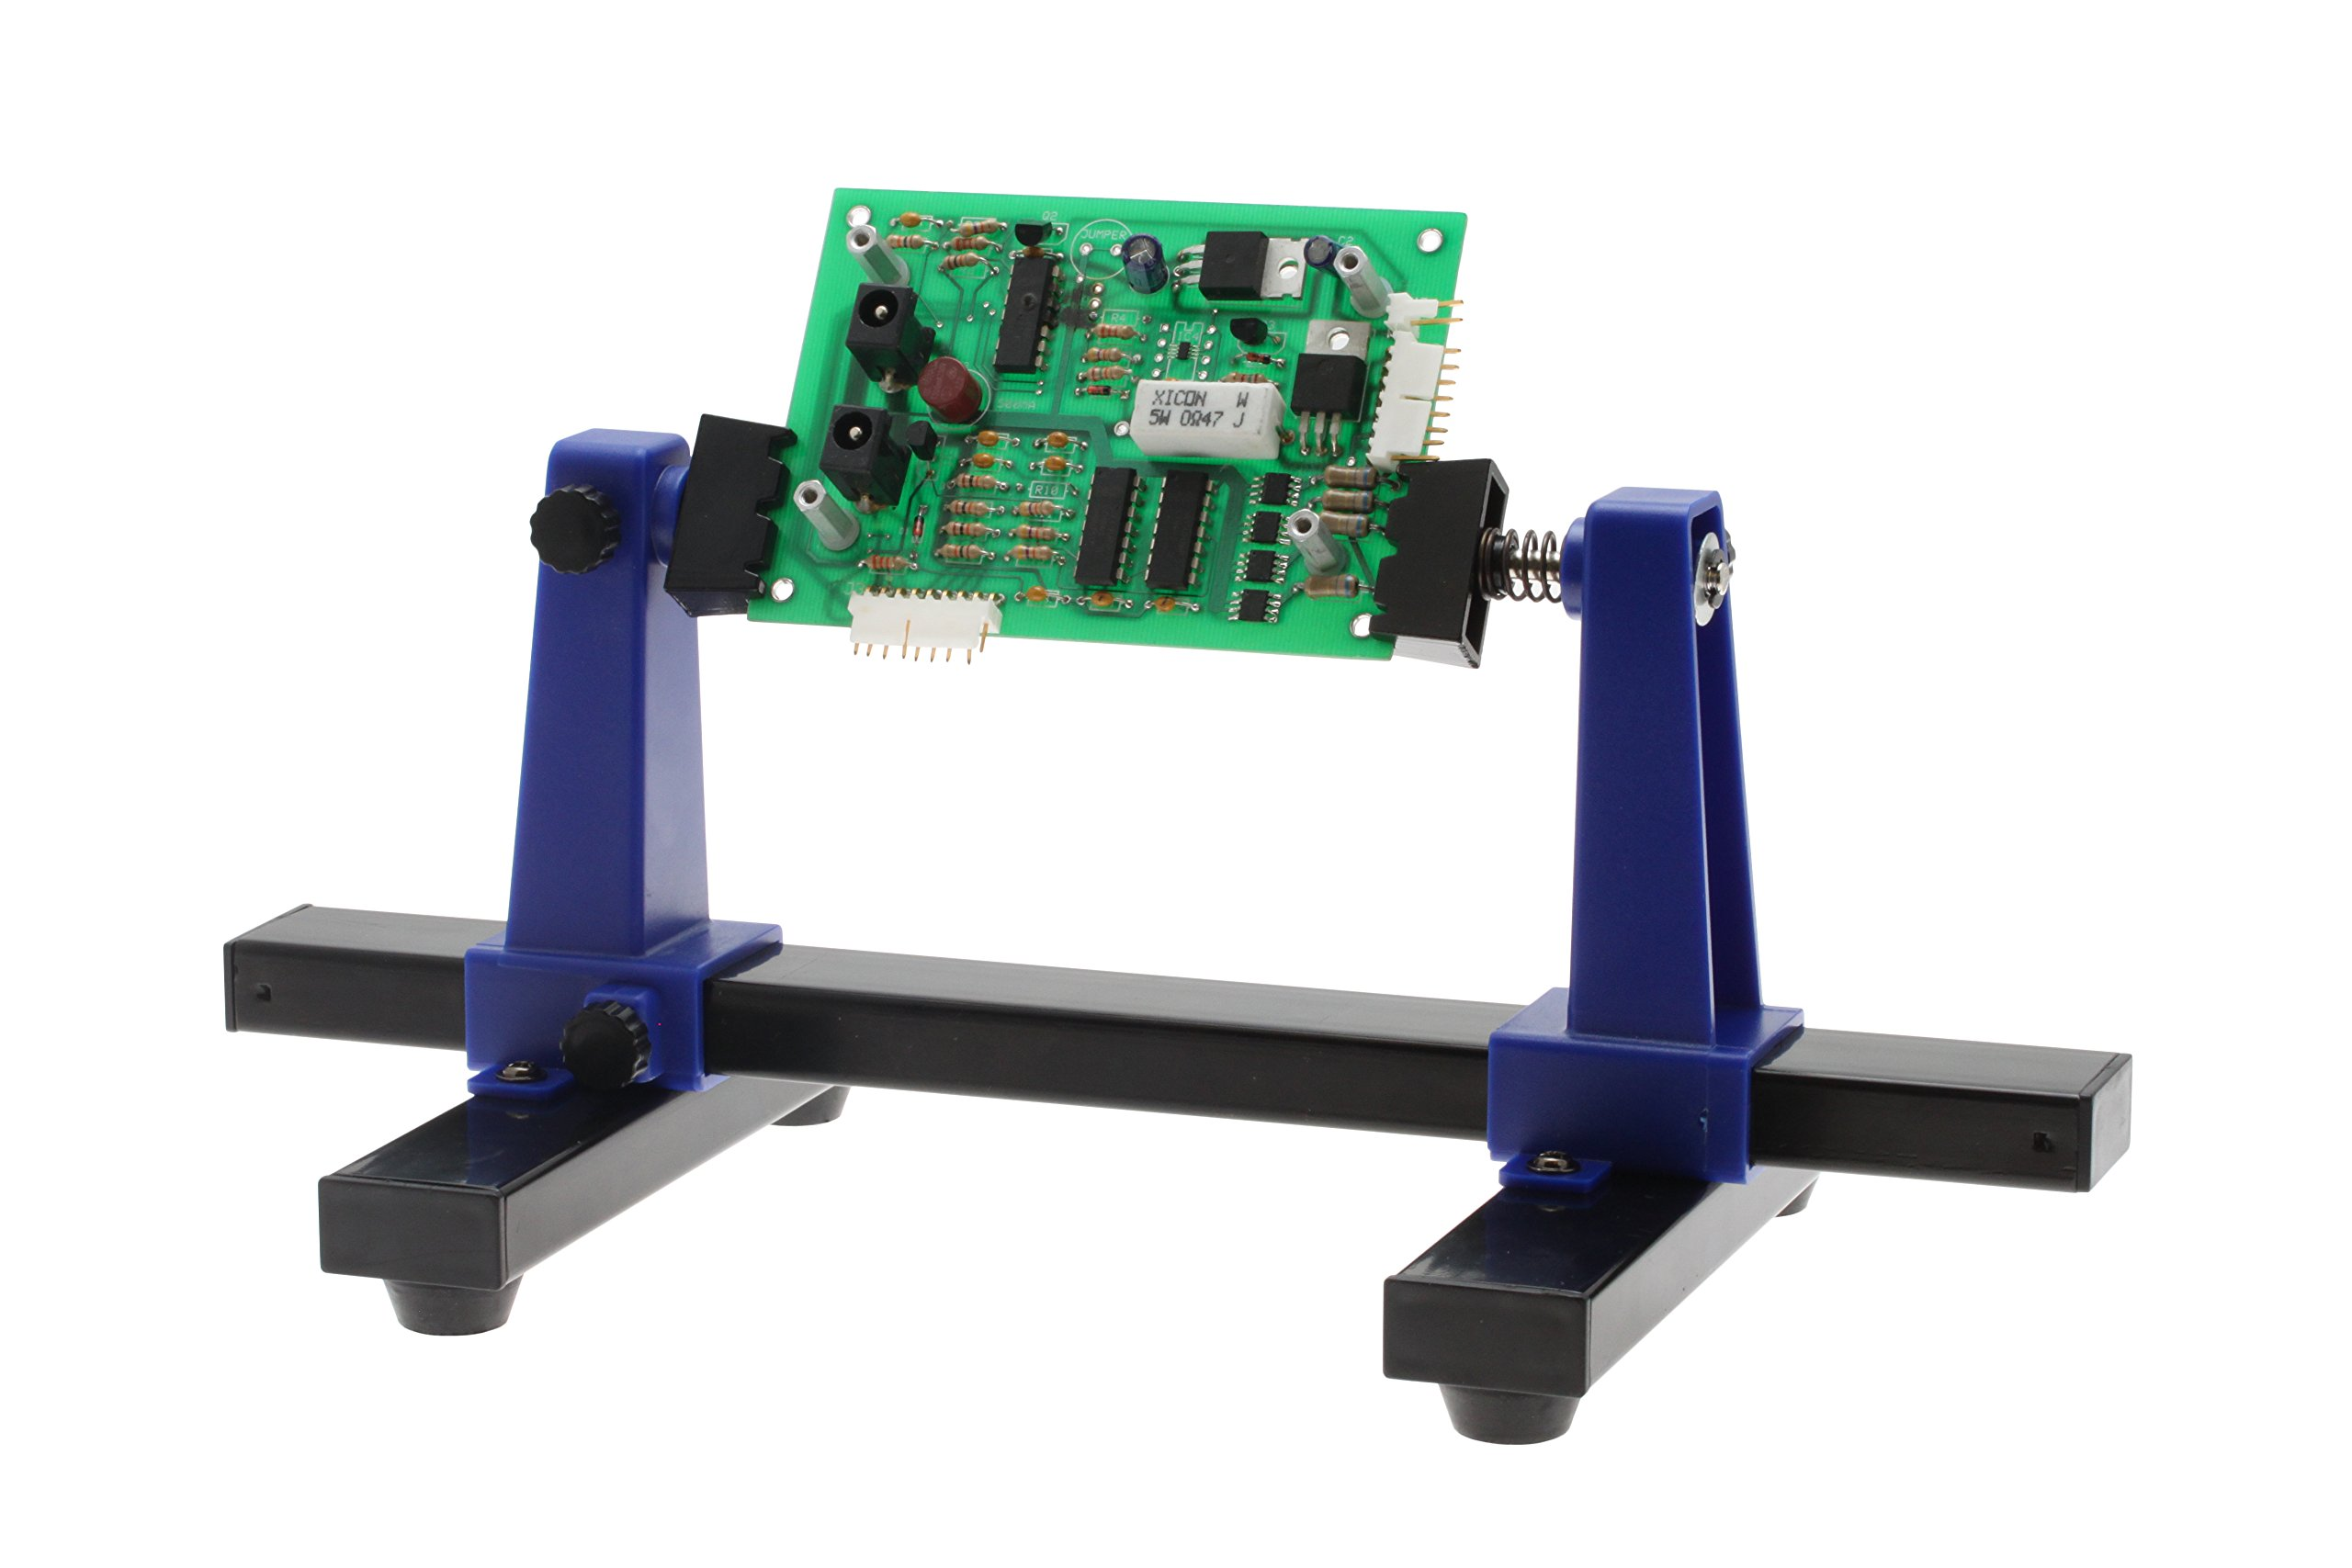 Aven 17010 Adjustable Circuit Board Holder by Aven